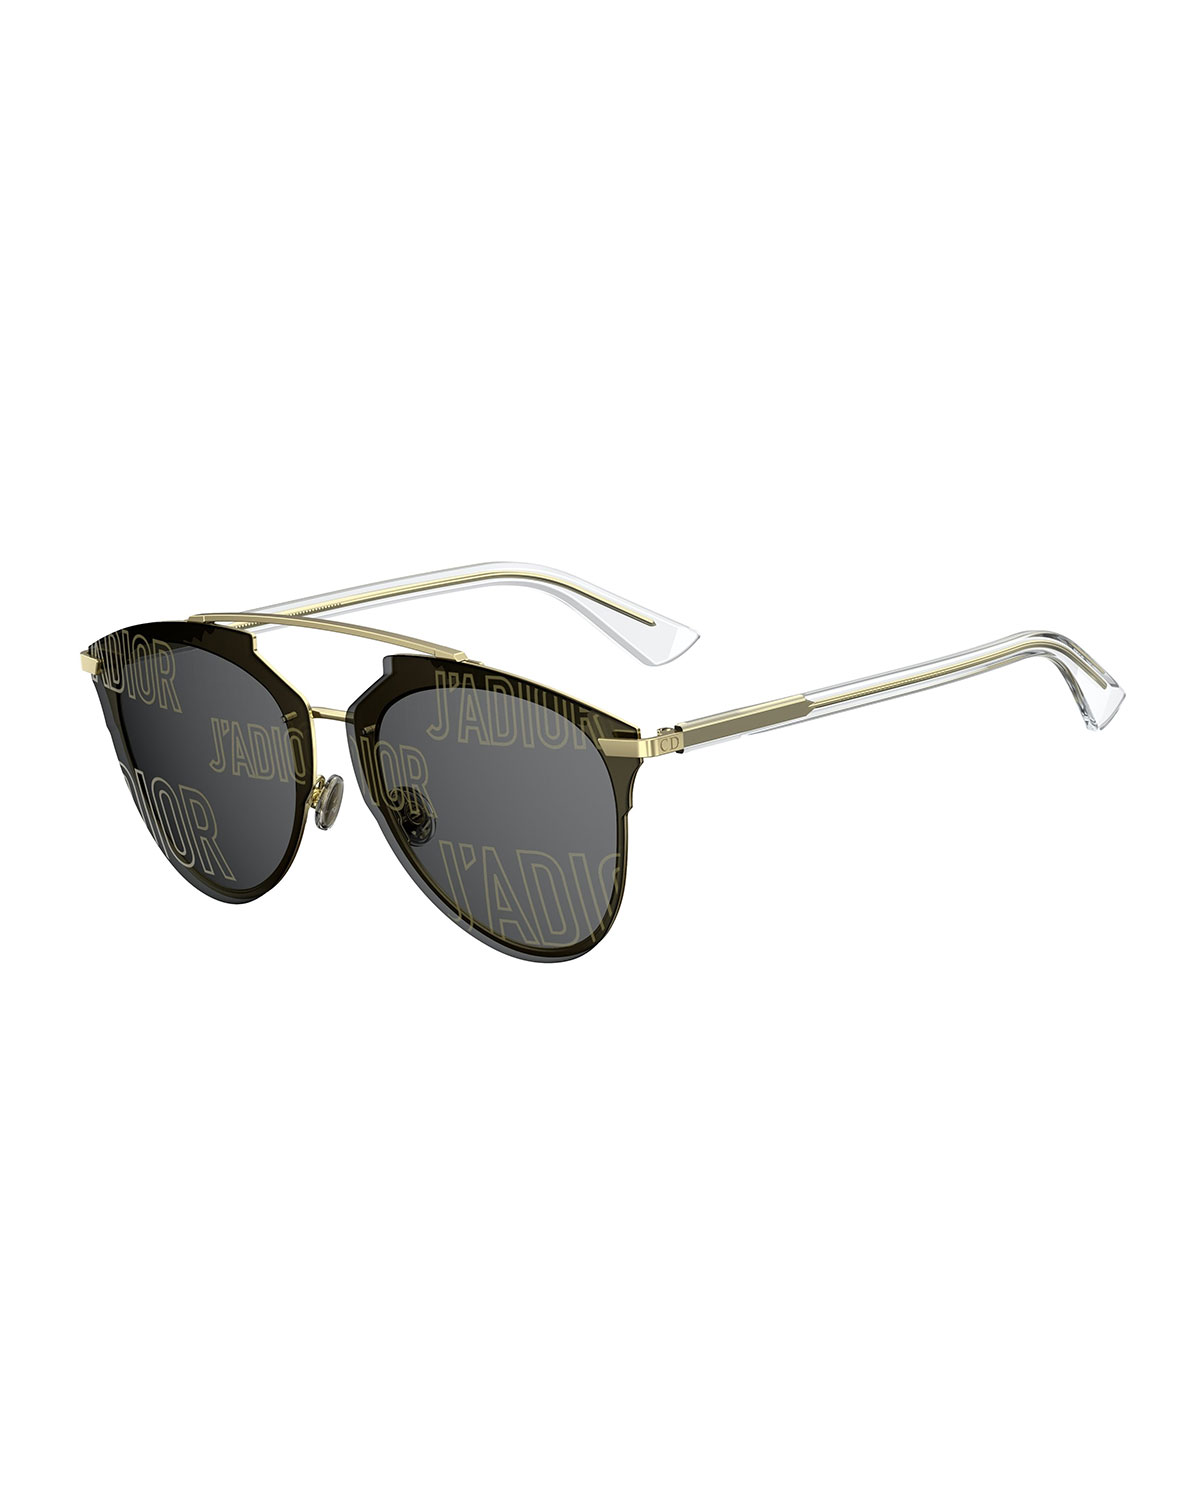 8f9bcc735b162 Dior Reflected Prism 63Mm Oversize Mirrored Brow Bar Sunglasses - Rose  Gold  Crystal In Black